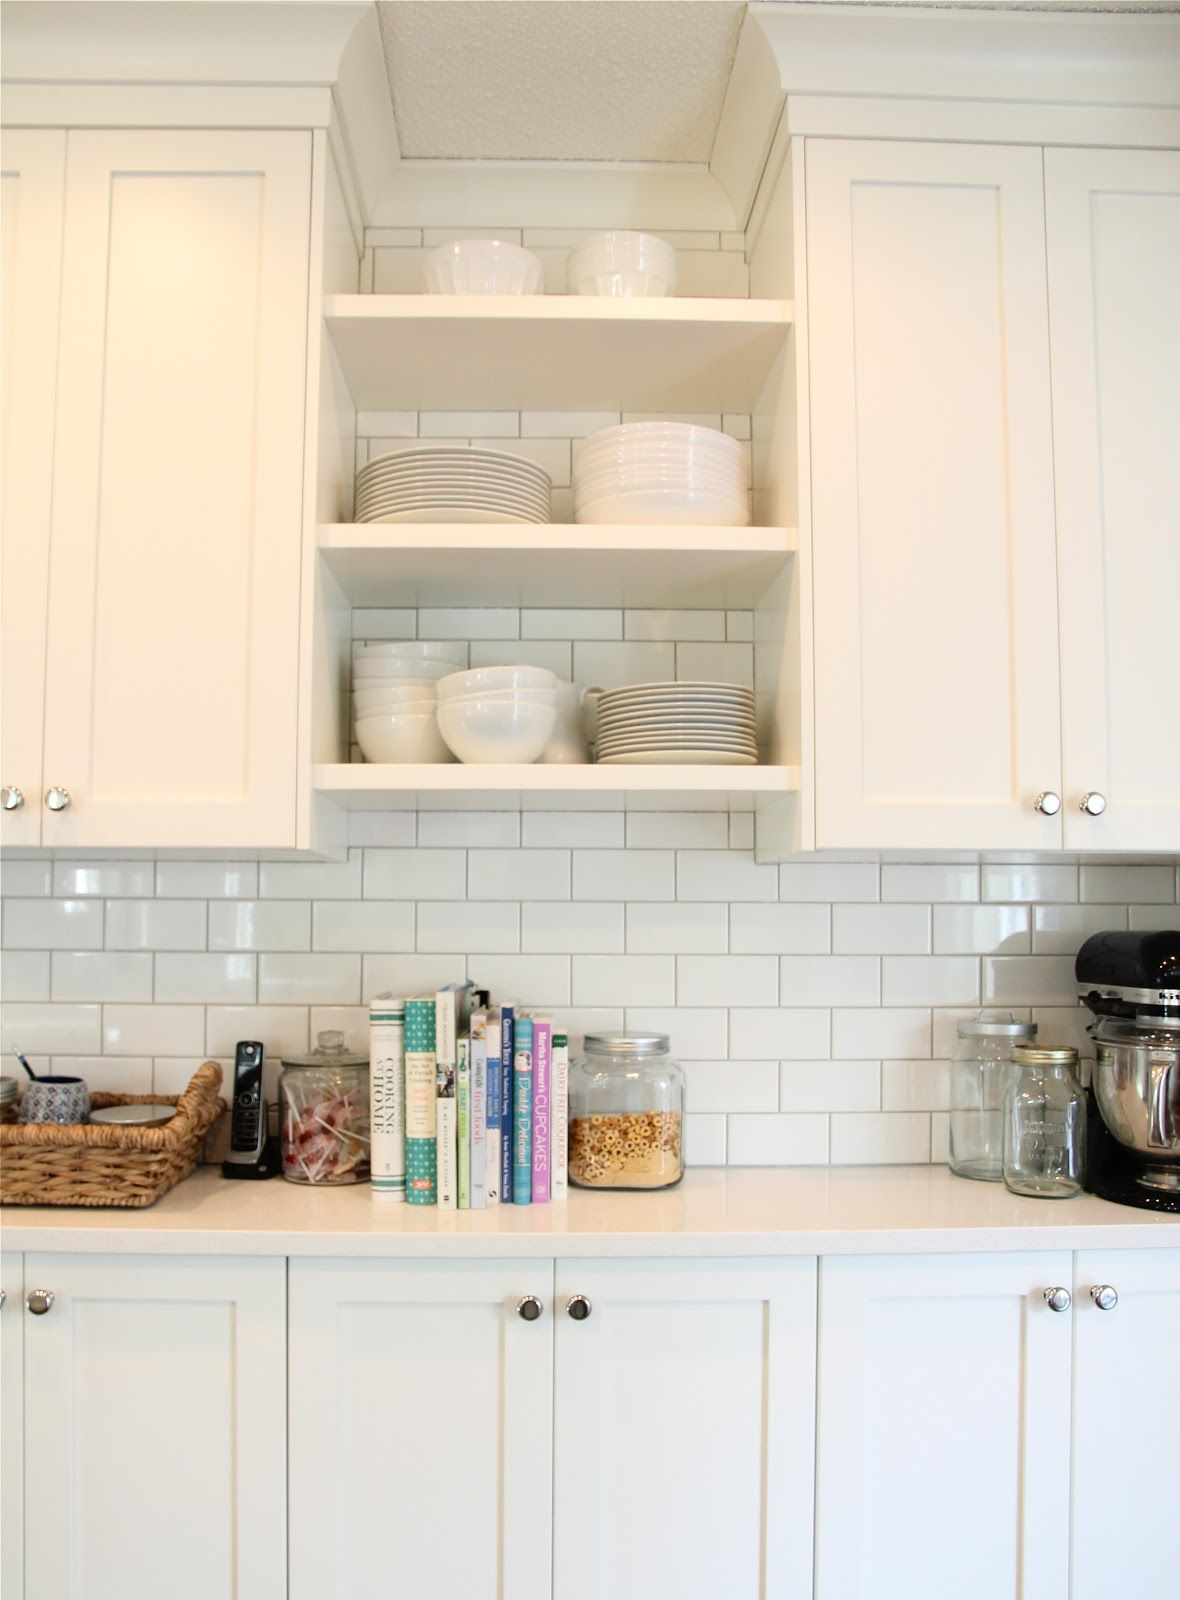 Cloud White Cabinets Light Gray Grout White Subway Tiles Open Shelving Pretty Crown On Off White Kitchens Neutral Kitchens Decor Off White Kitchen Cabinets